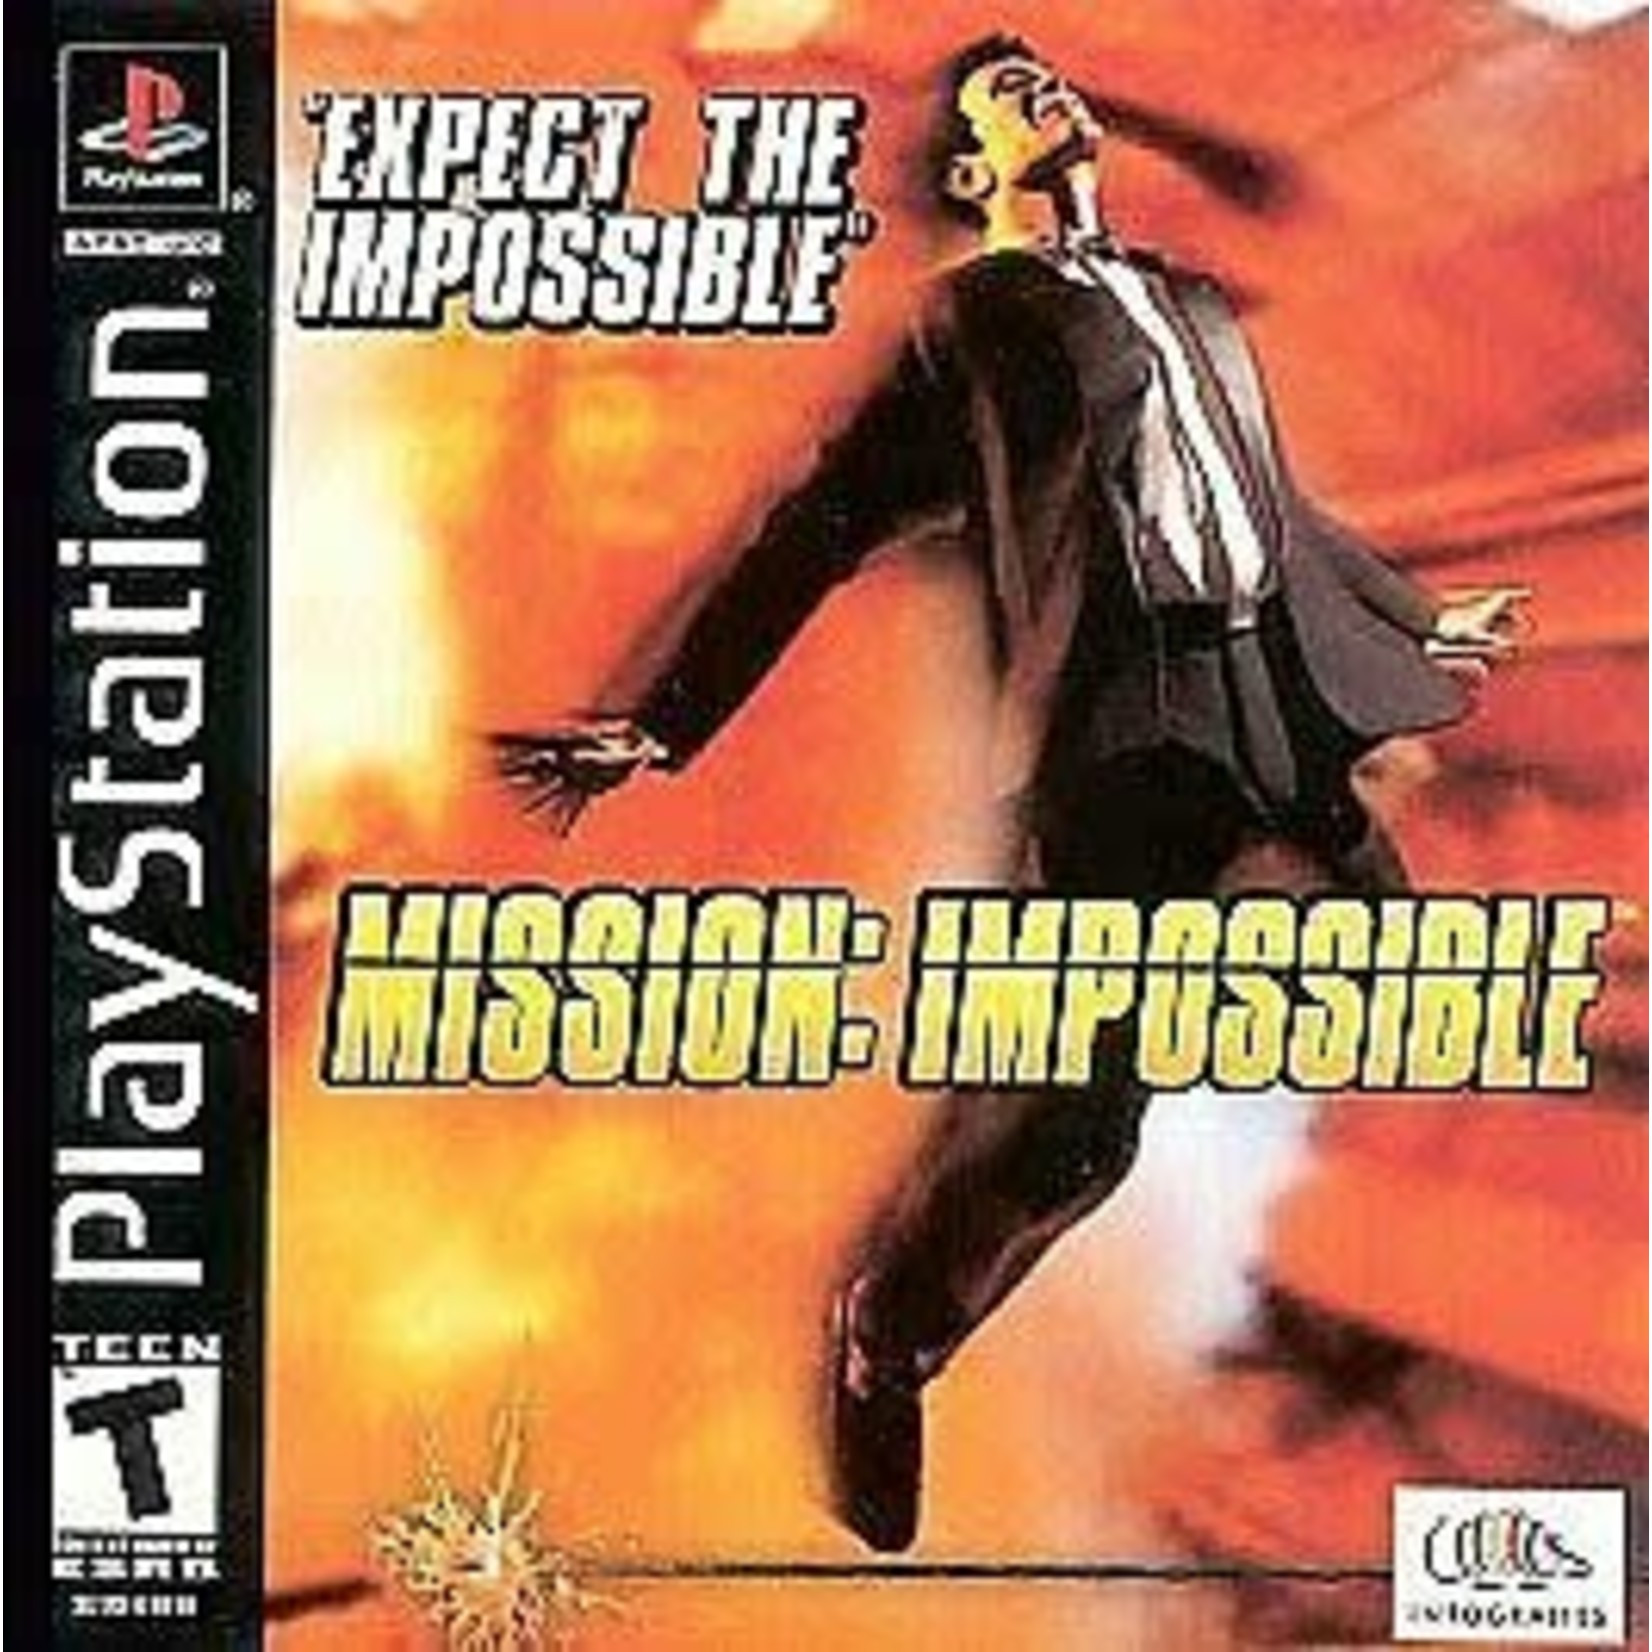 ps1u-Mission Impossible (complete)